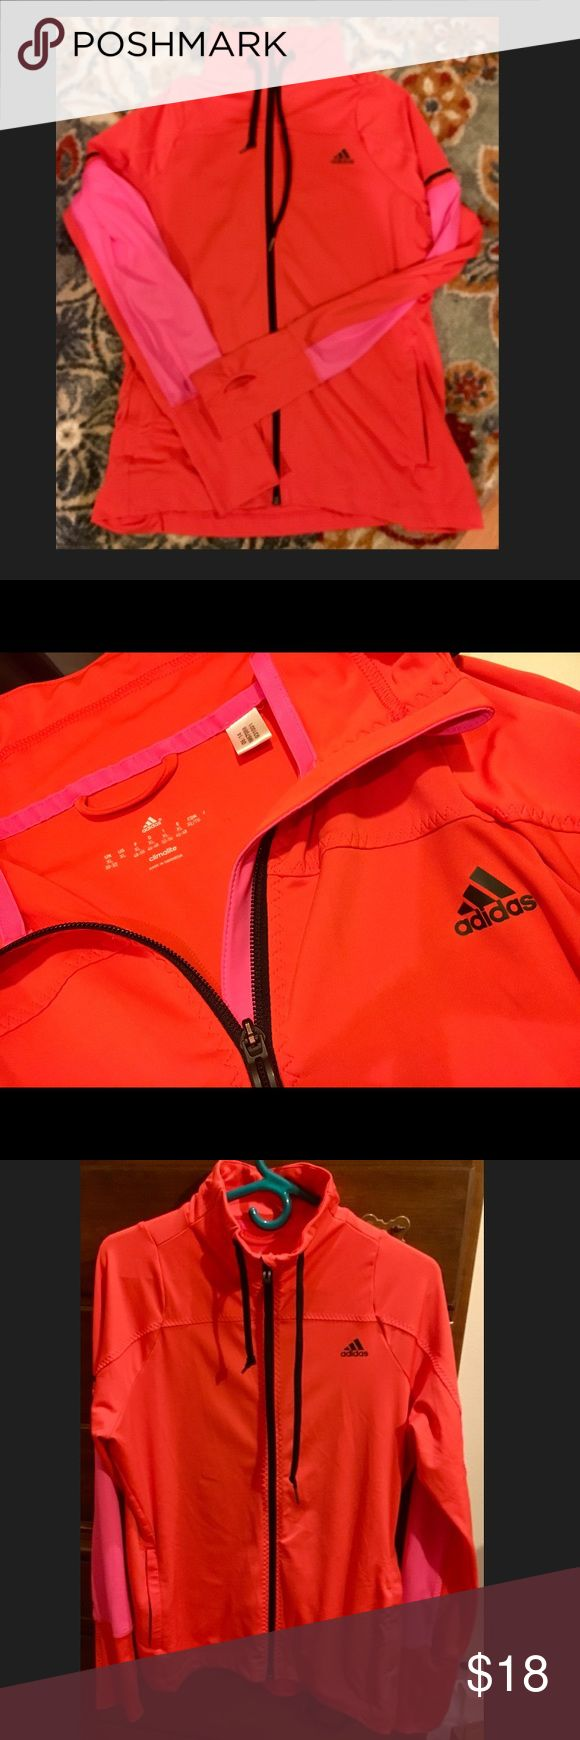 NWOT Woman's Adidas zip up jacket,  size XL NWOT Woman's Adidas zip up jacket,  size XL. So cute! Great orange and hot pink combo and thumb holes! Adidas Tops Sweatshirts & Hoodies